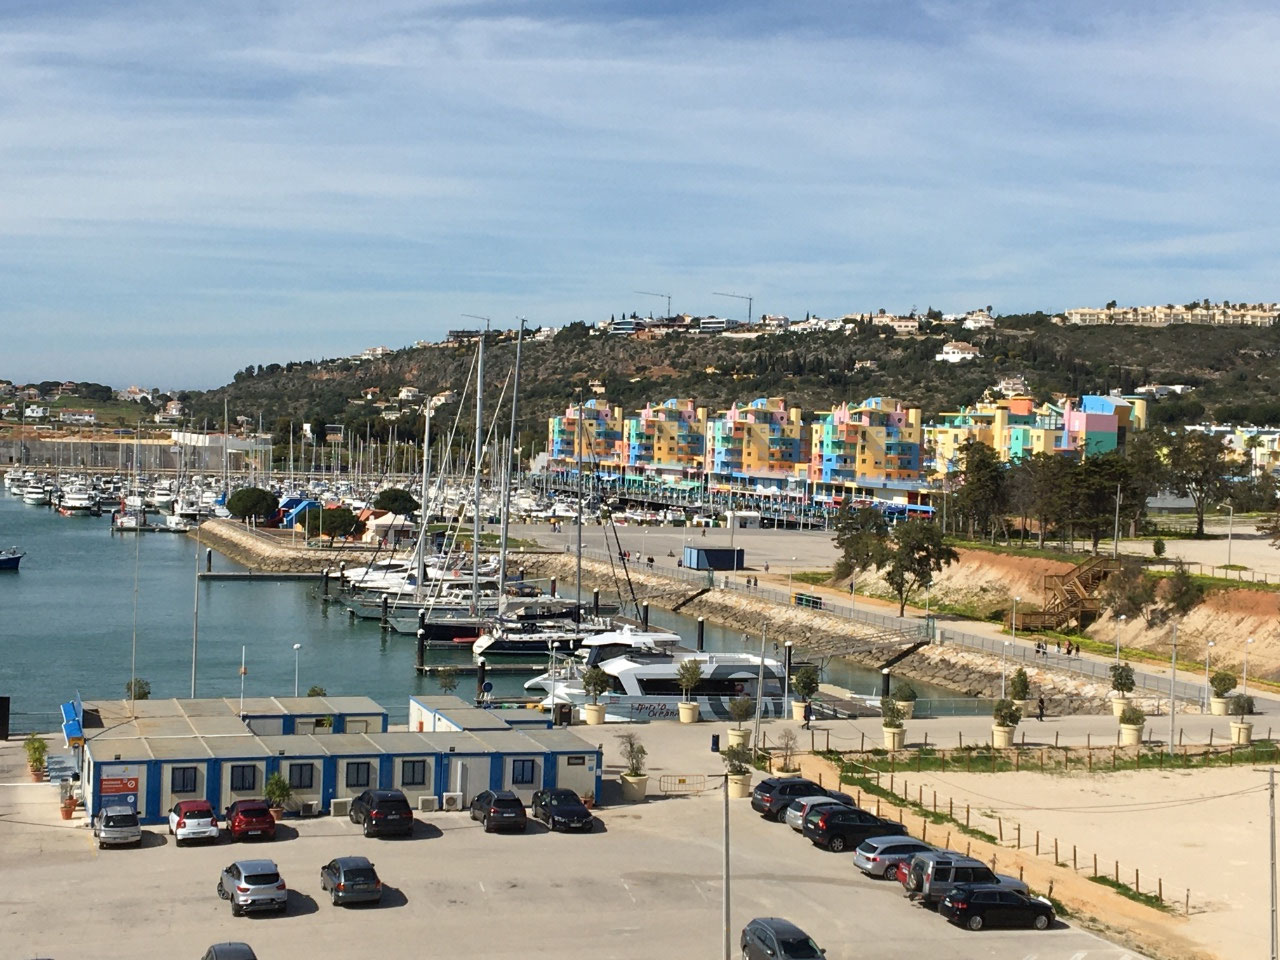 Some colour at the marina